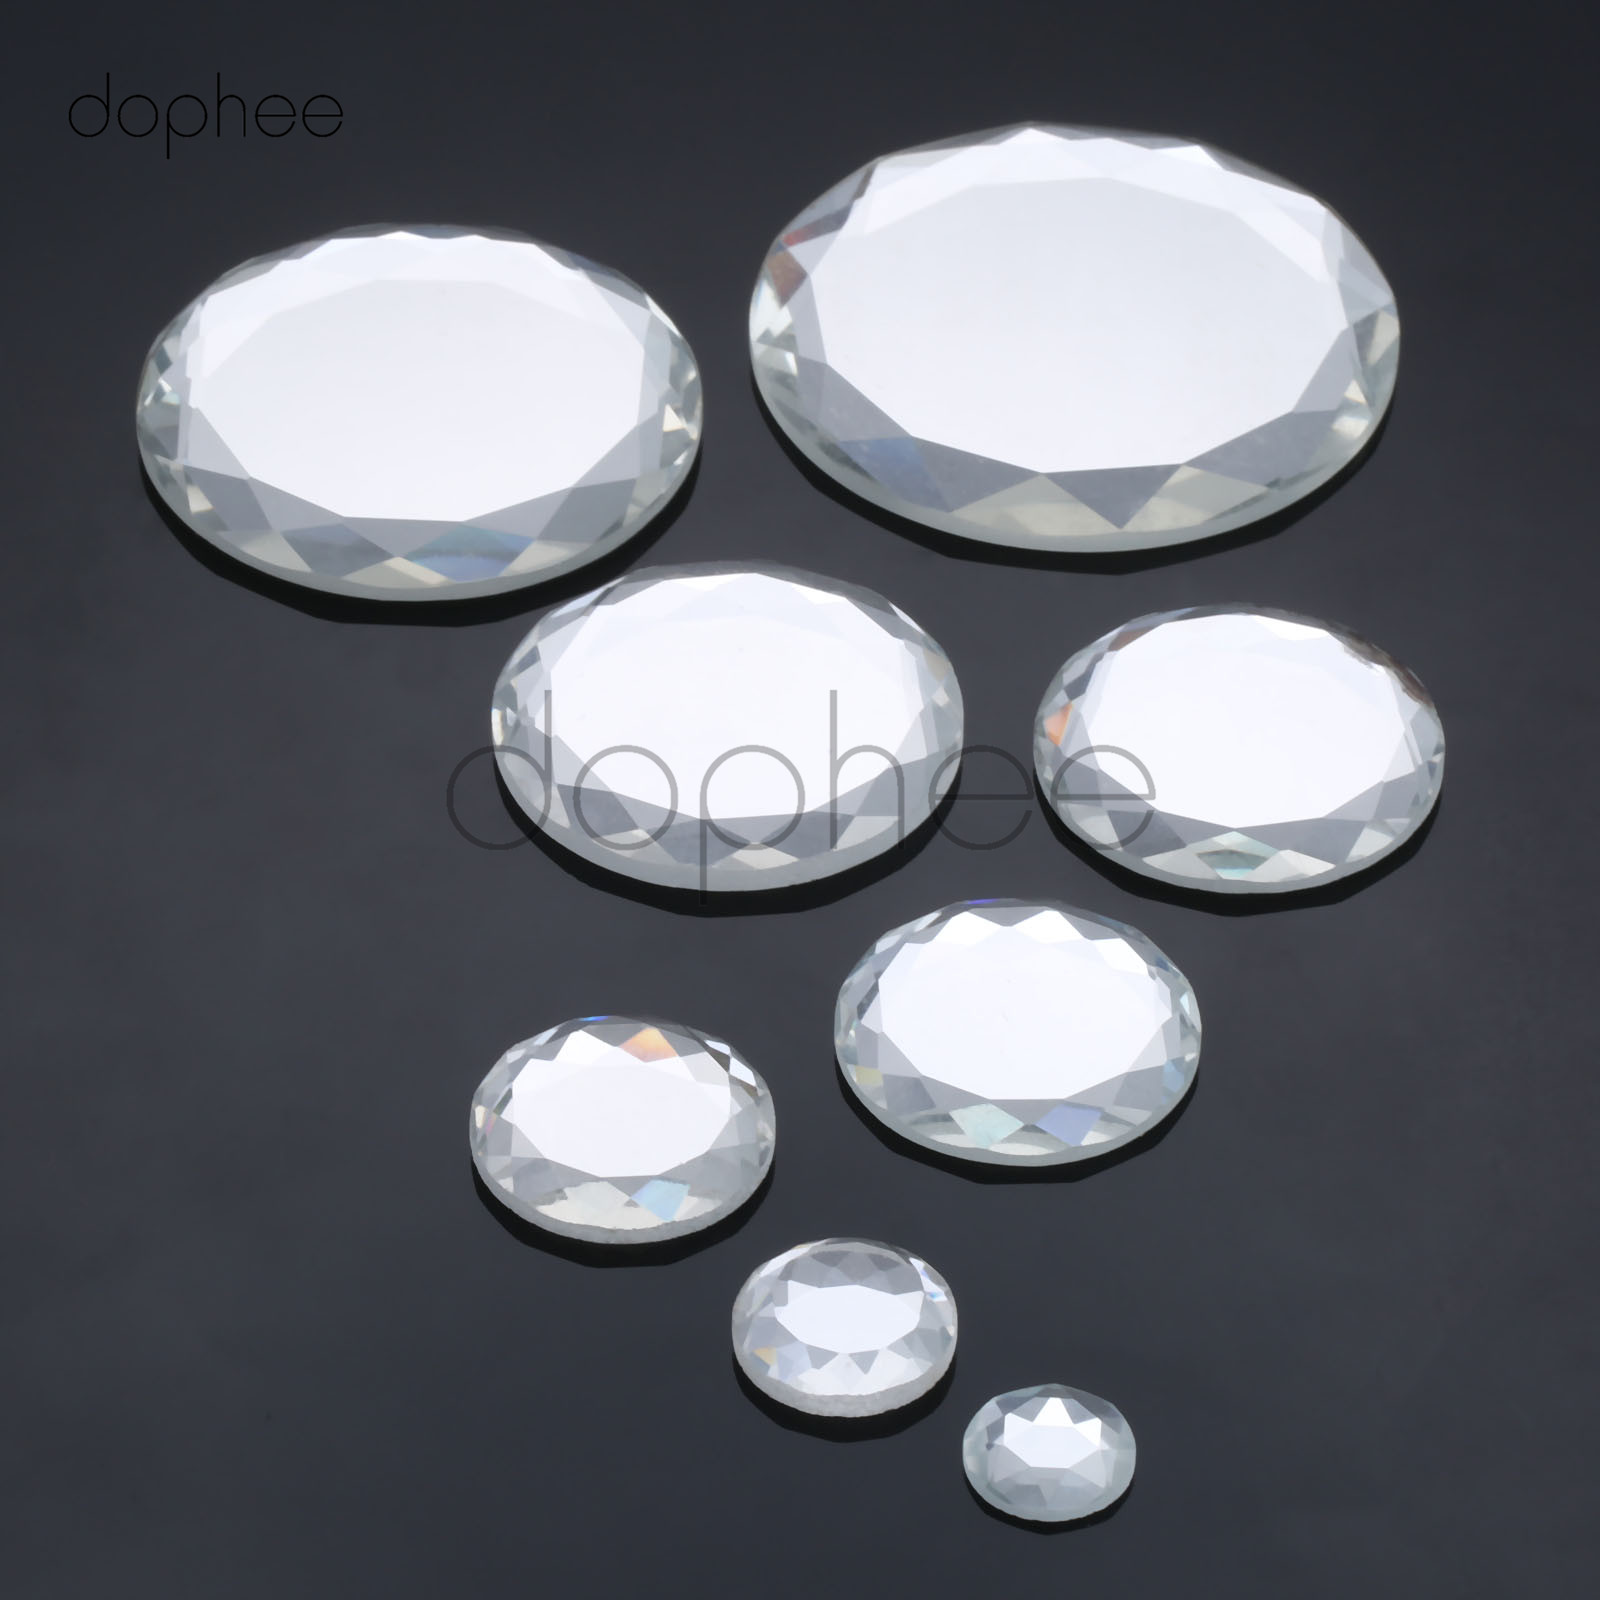 Arts,crafts & Sewing Home & Garden Dophee 1 Set Crystal Glass Flatbacks 14/18/25/30/35/40/45/58mm Round Clear Color For Jewelry Making And Diy Glue Decoration Ideal Gift For All Occasions